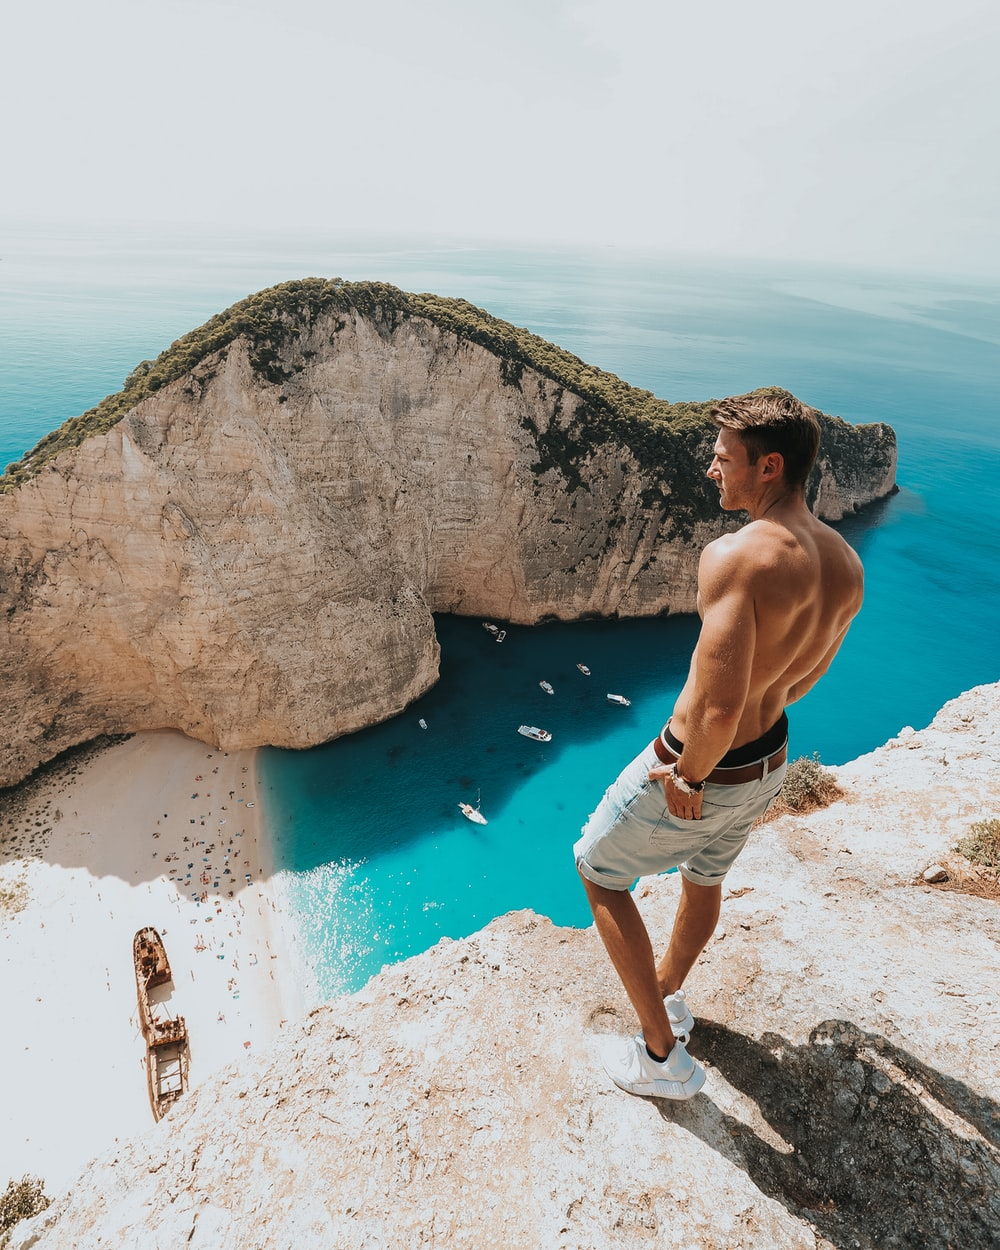 man standing on rock near body of water during daytime